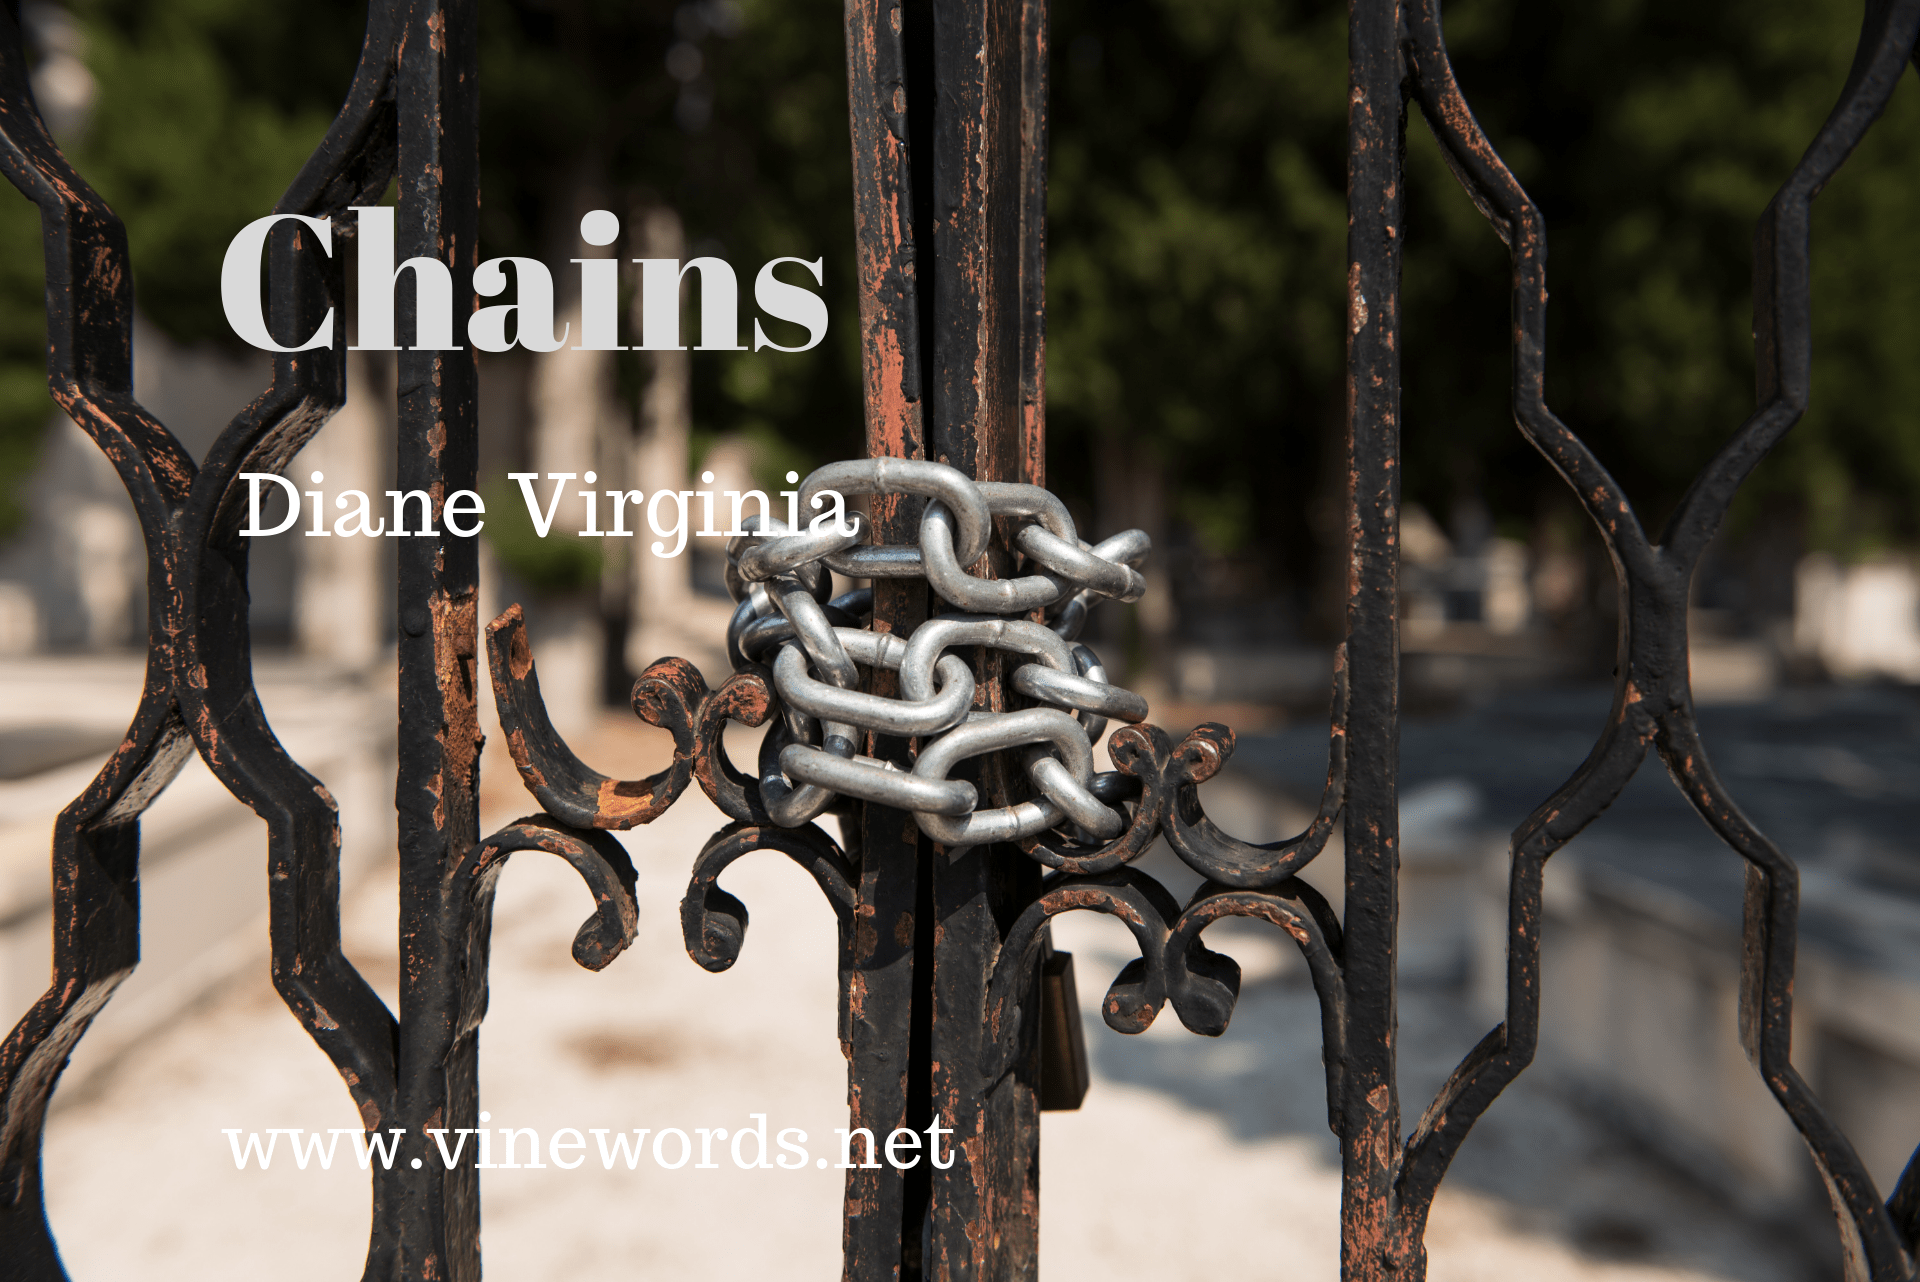 Diane Virginia: Chains